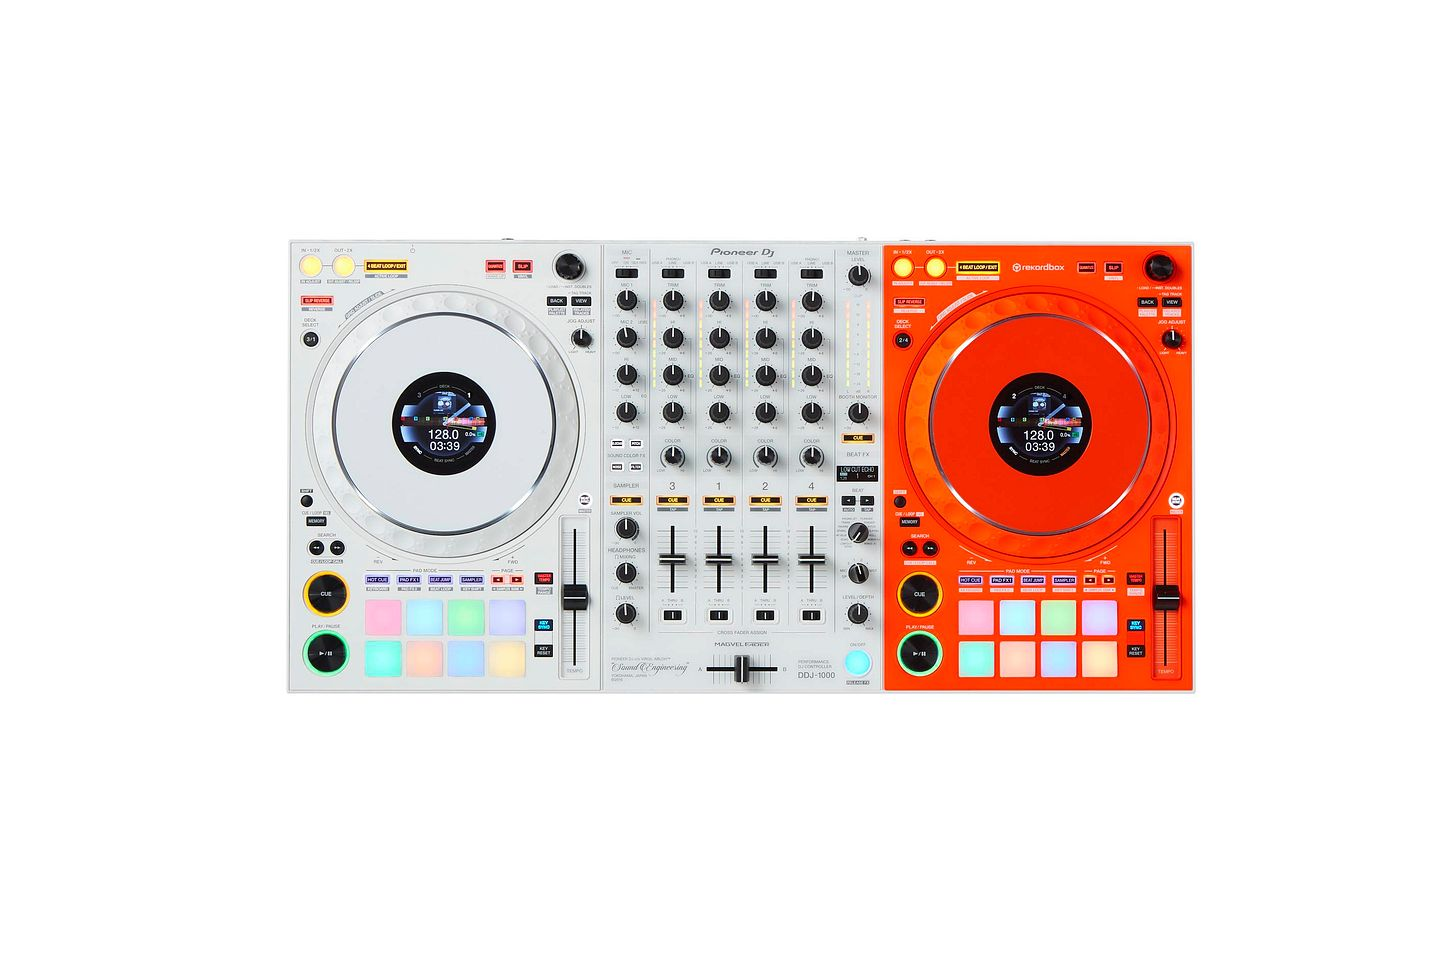 Off-White, Virgil Abloh Team With Pioneer DJ on Controller, Capsule